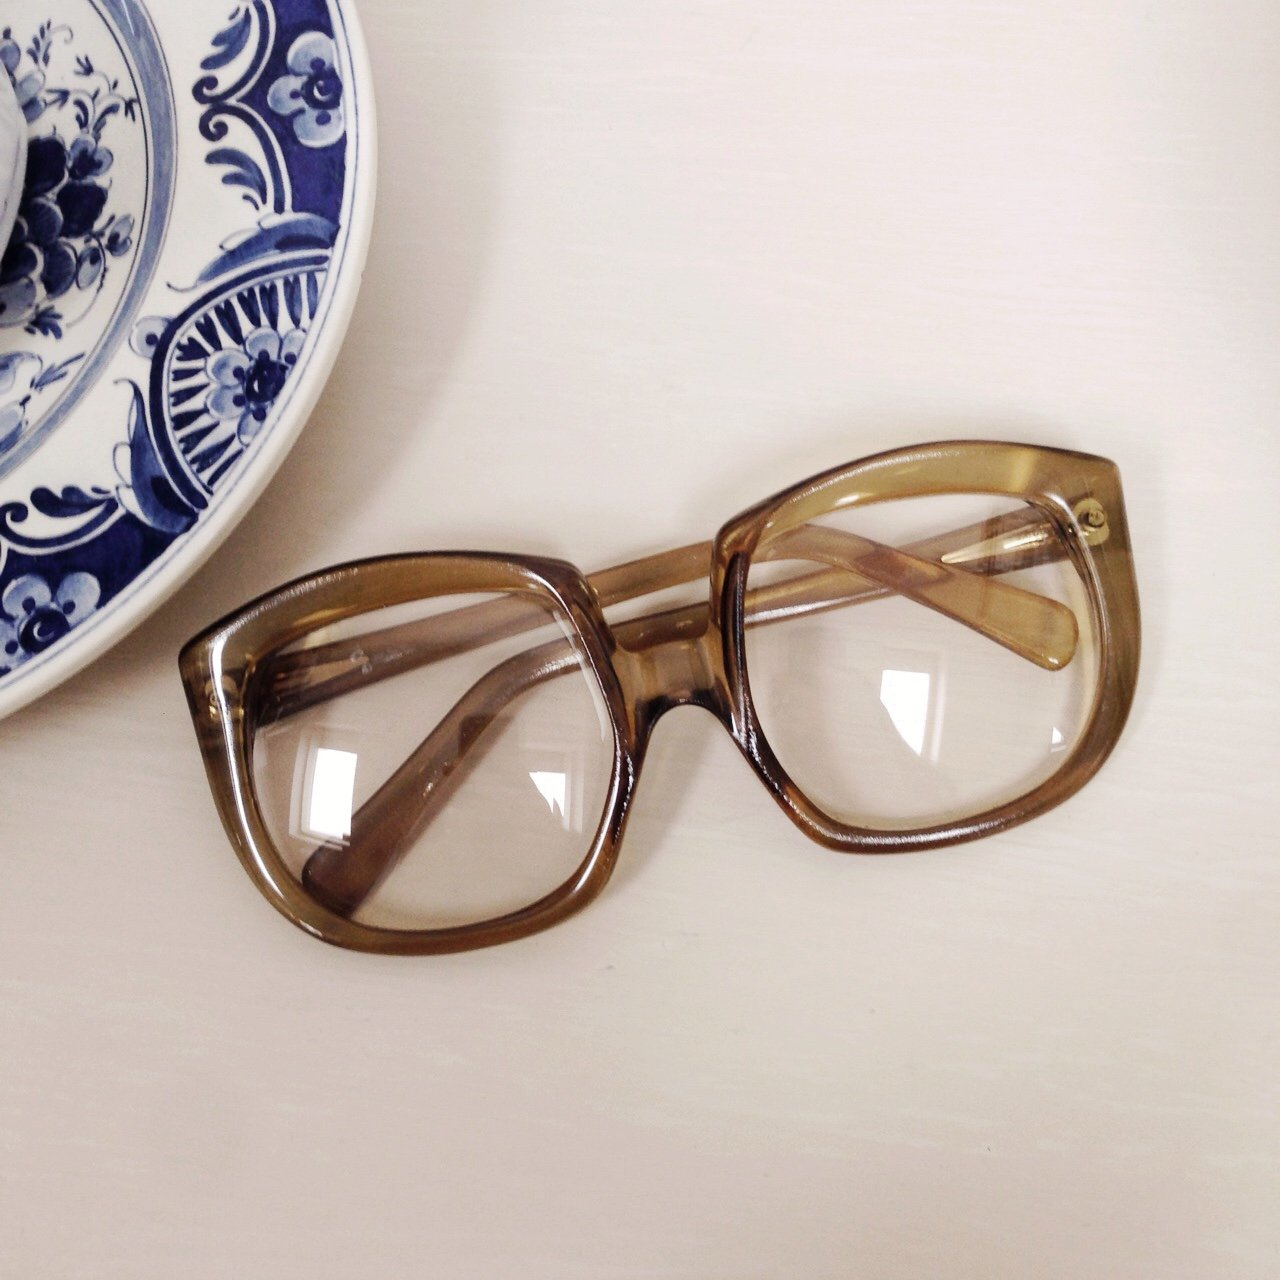 Opinion, vintage christian dior glasses something is